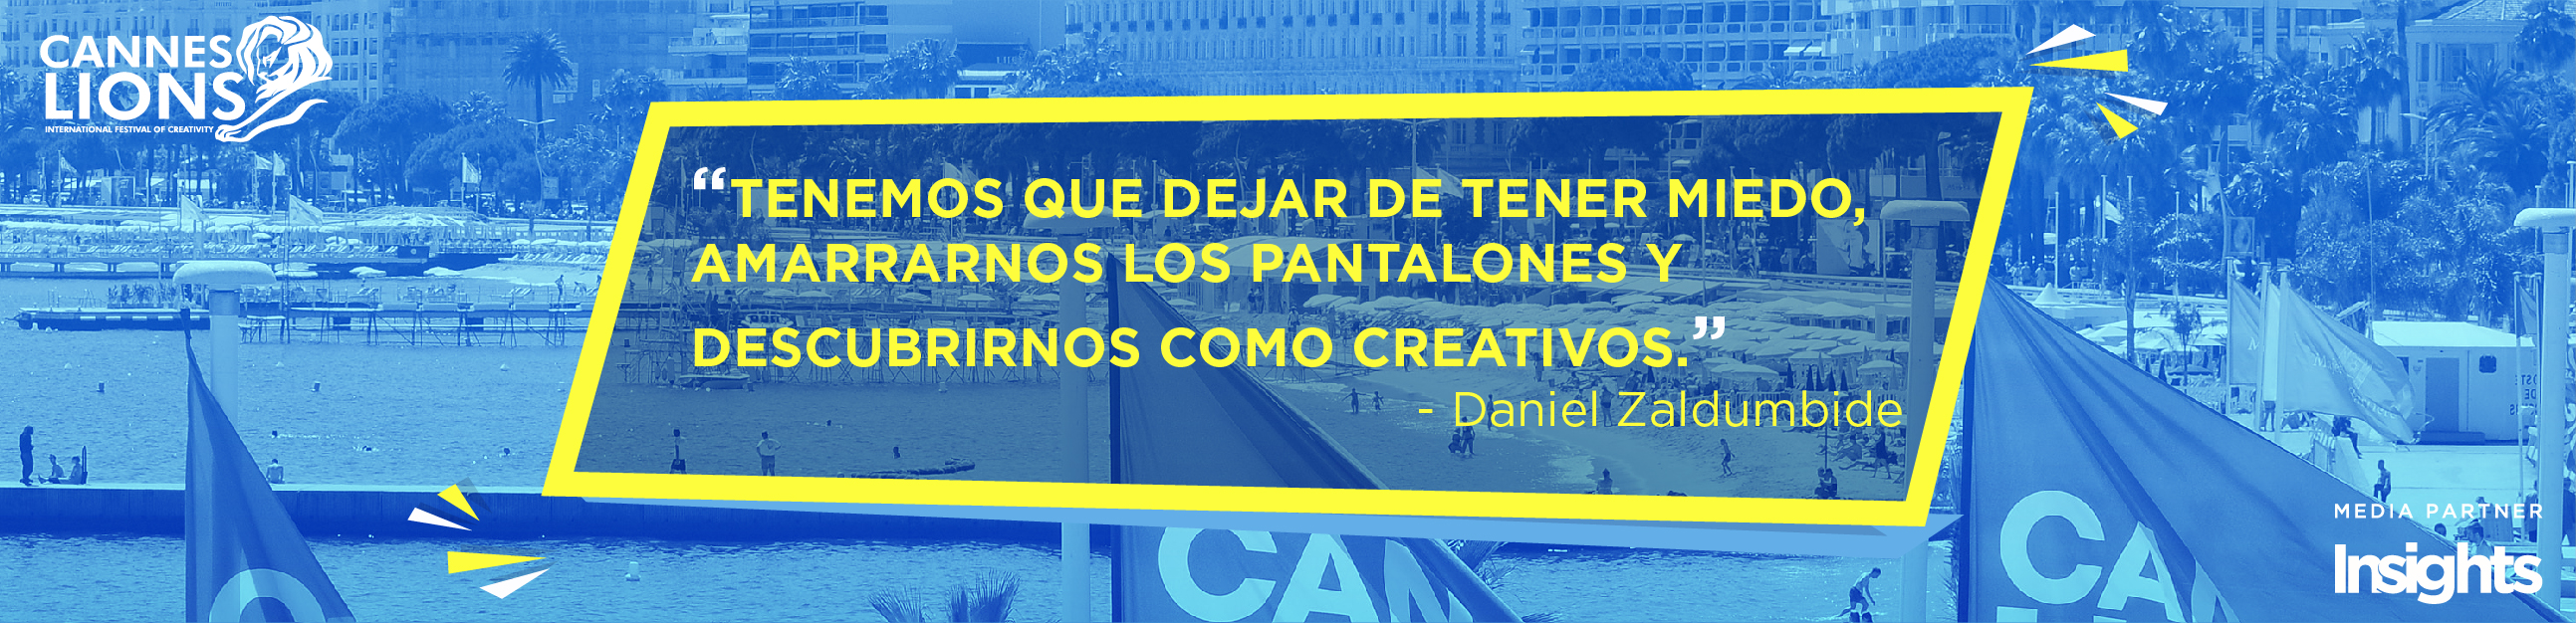 Cannes Lions Quotes -02